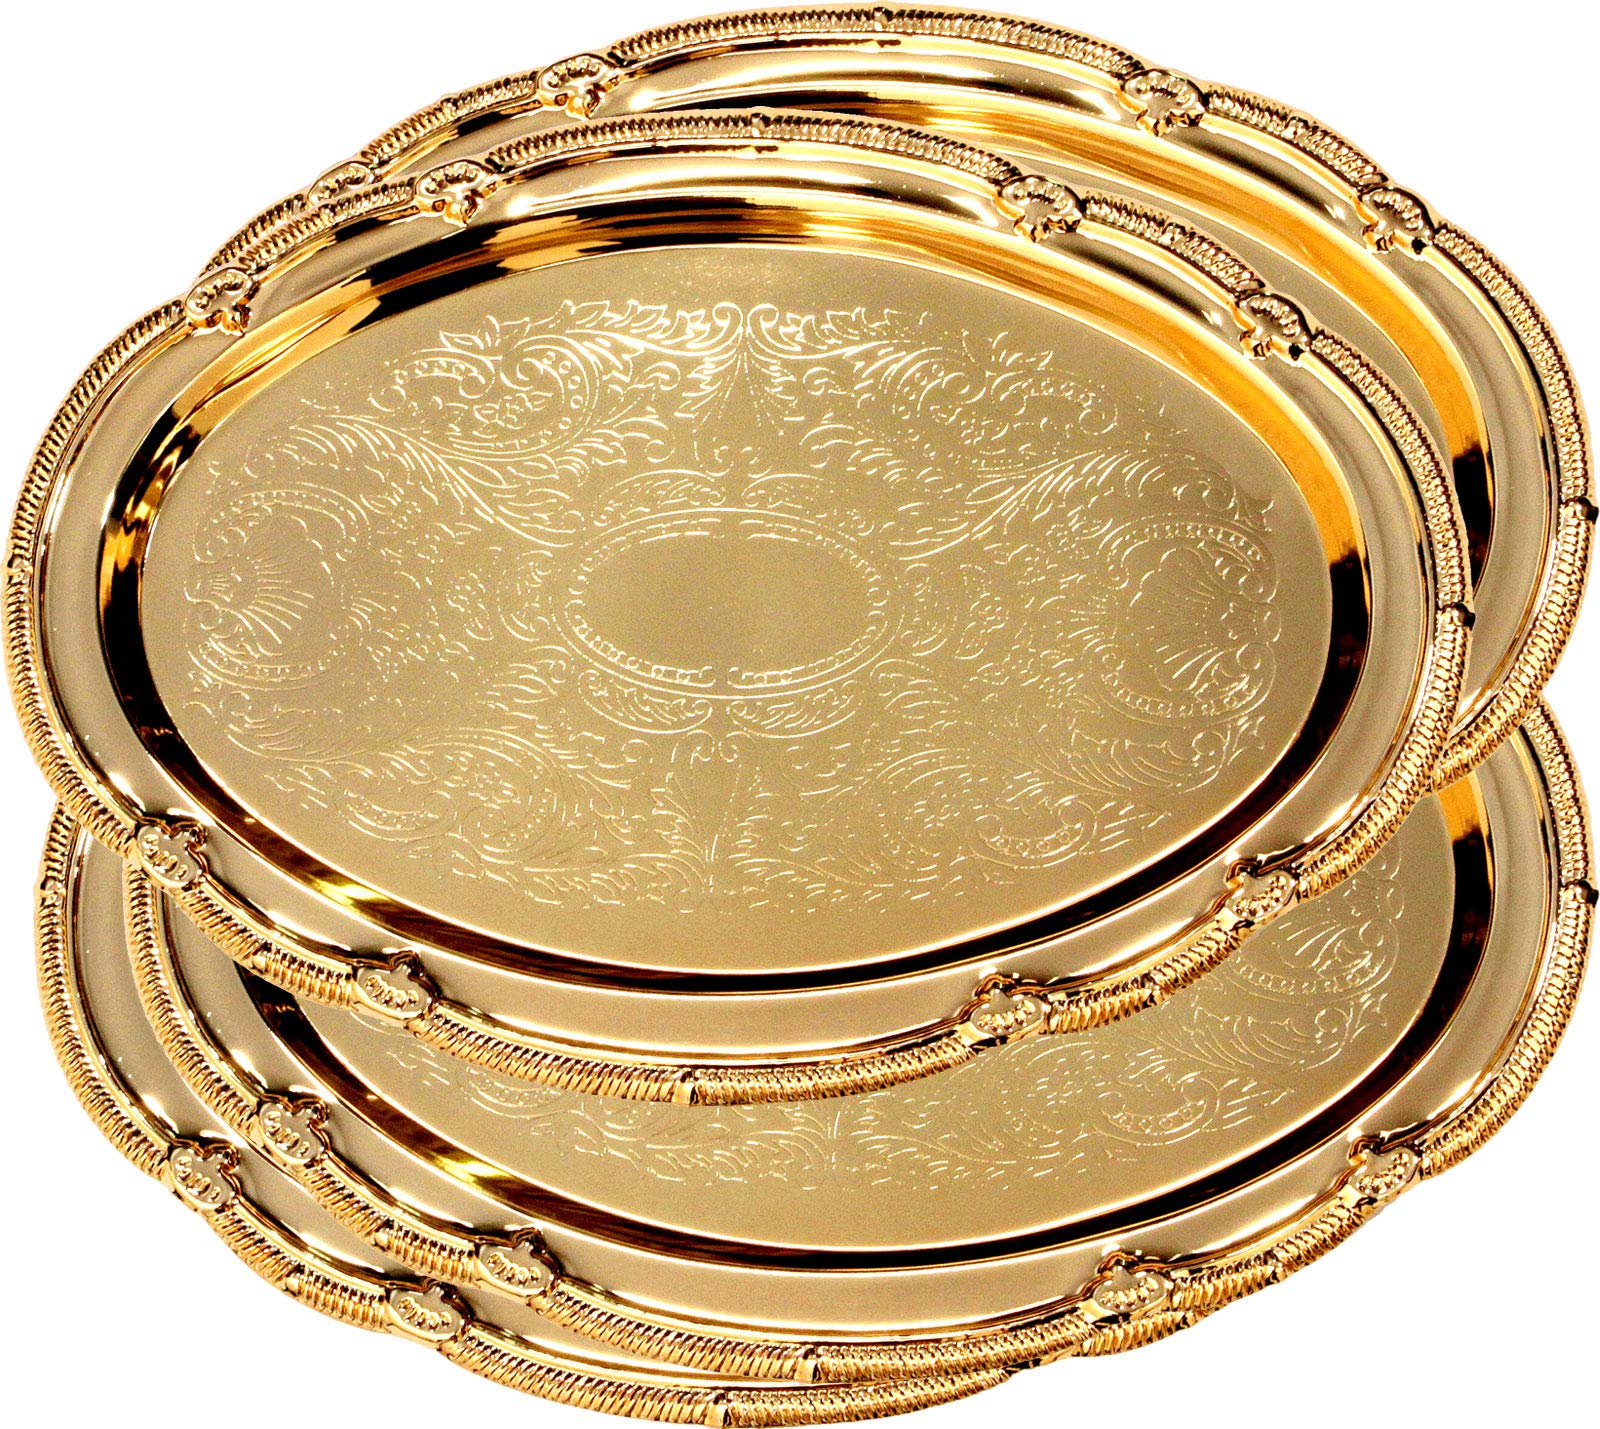 Maro Megastore (Pack of 4) 17.7-Inch x 13-Inch Oval Iron Gold Plated Serving Tray Edge Floral Engraved Decorative Wedding Birthday Dessert Cake Snack Wine Candle Platter Plate Party 125 Ts-162